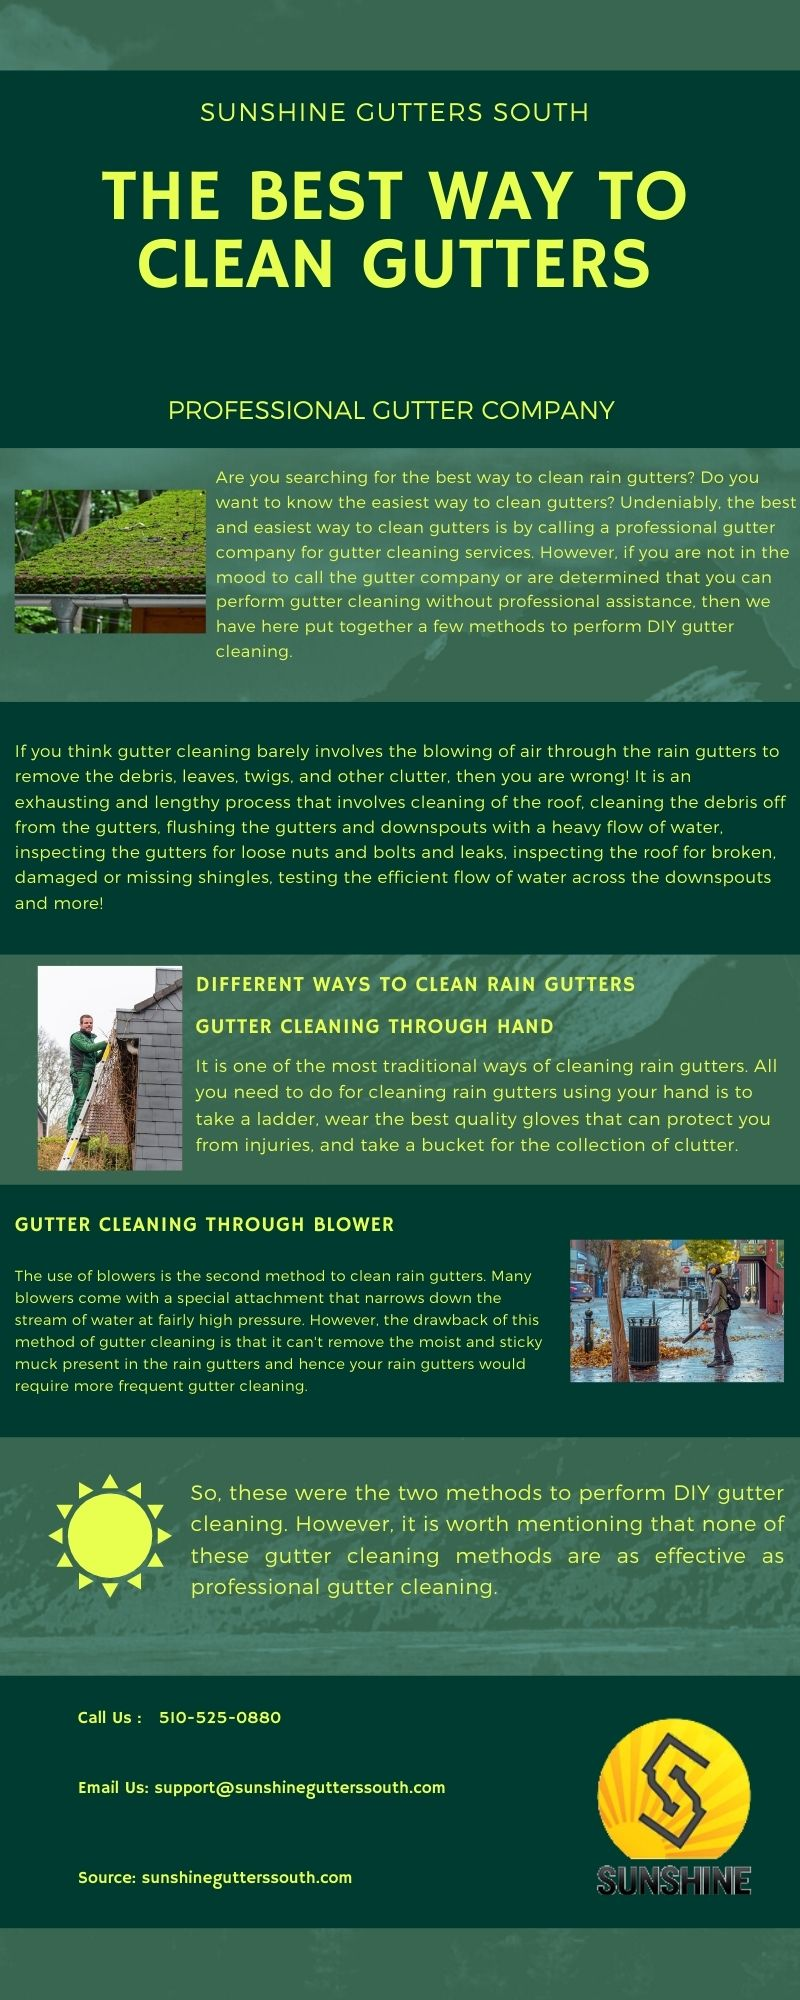 The Best Way To Clean Gutters